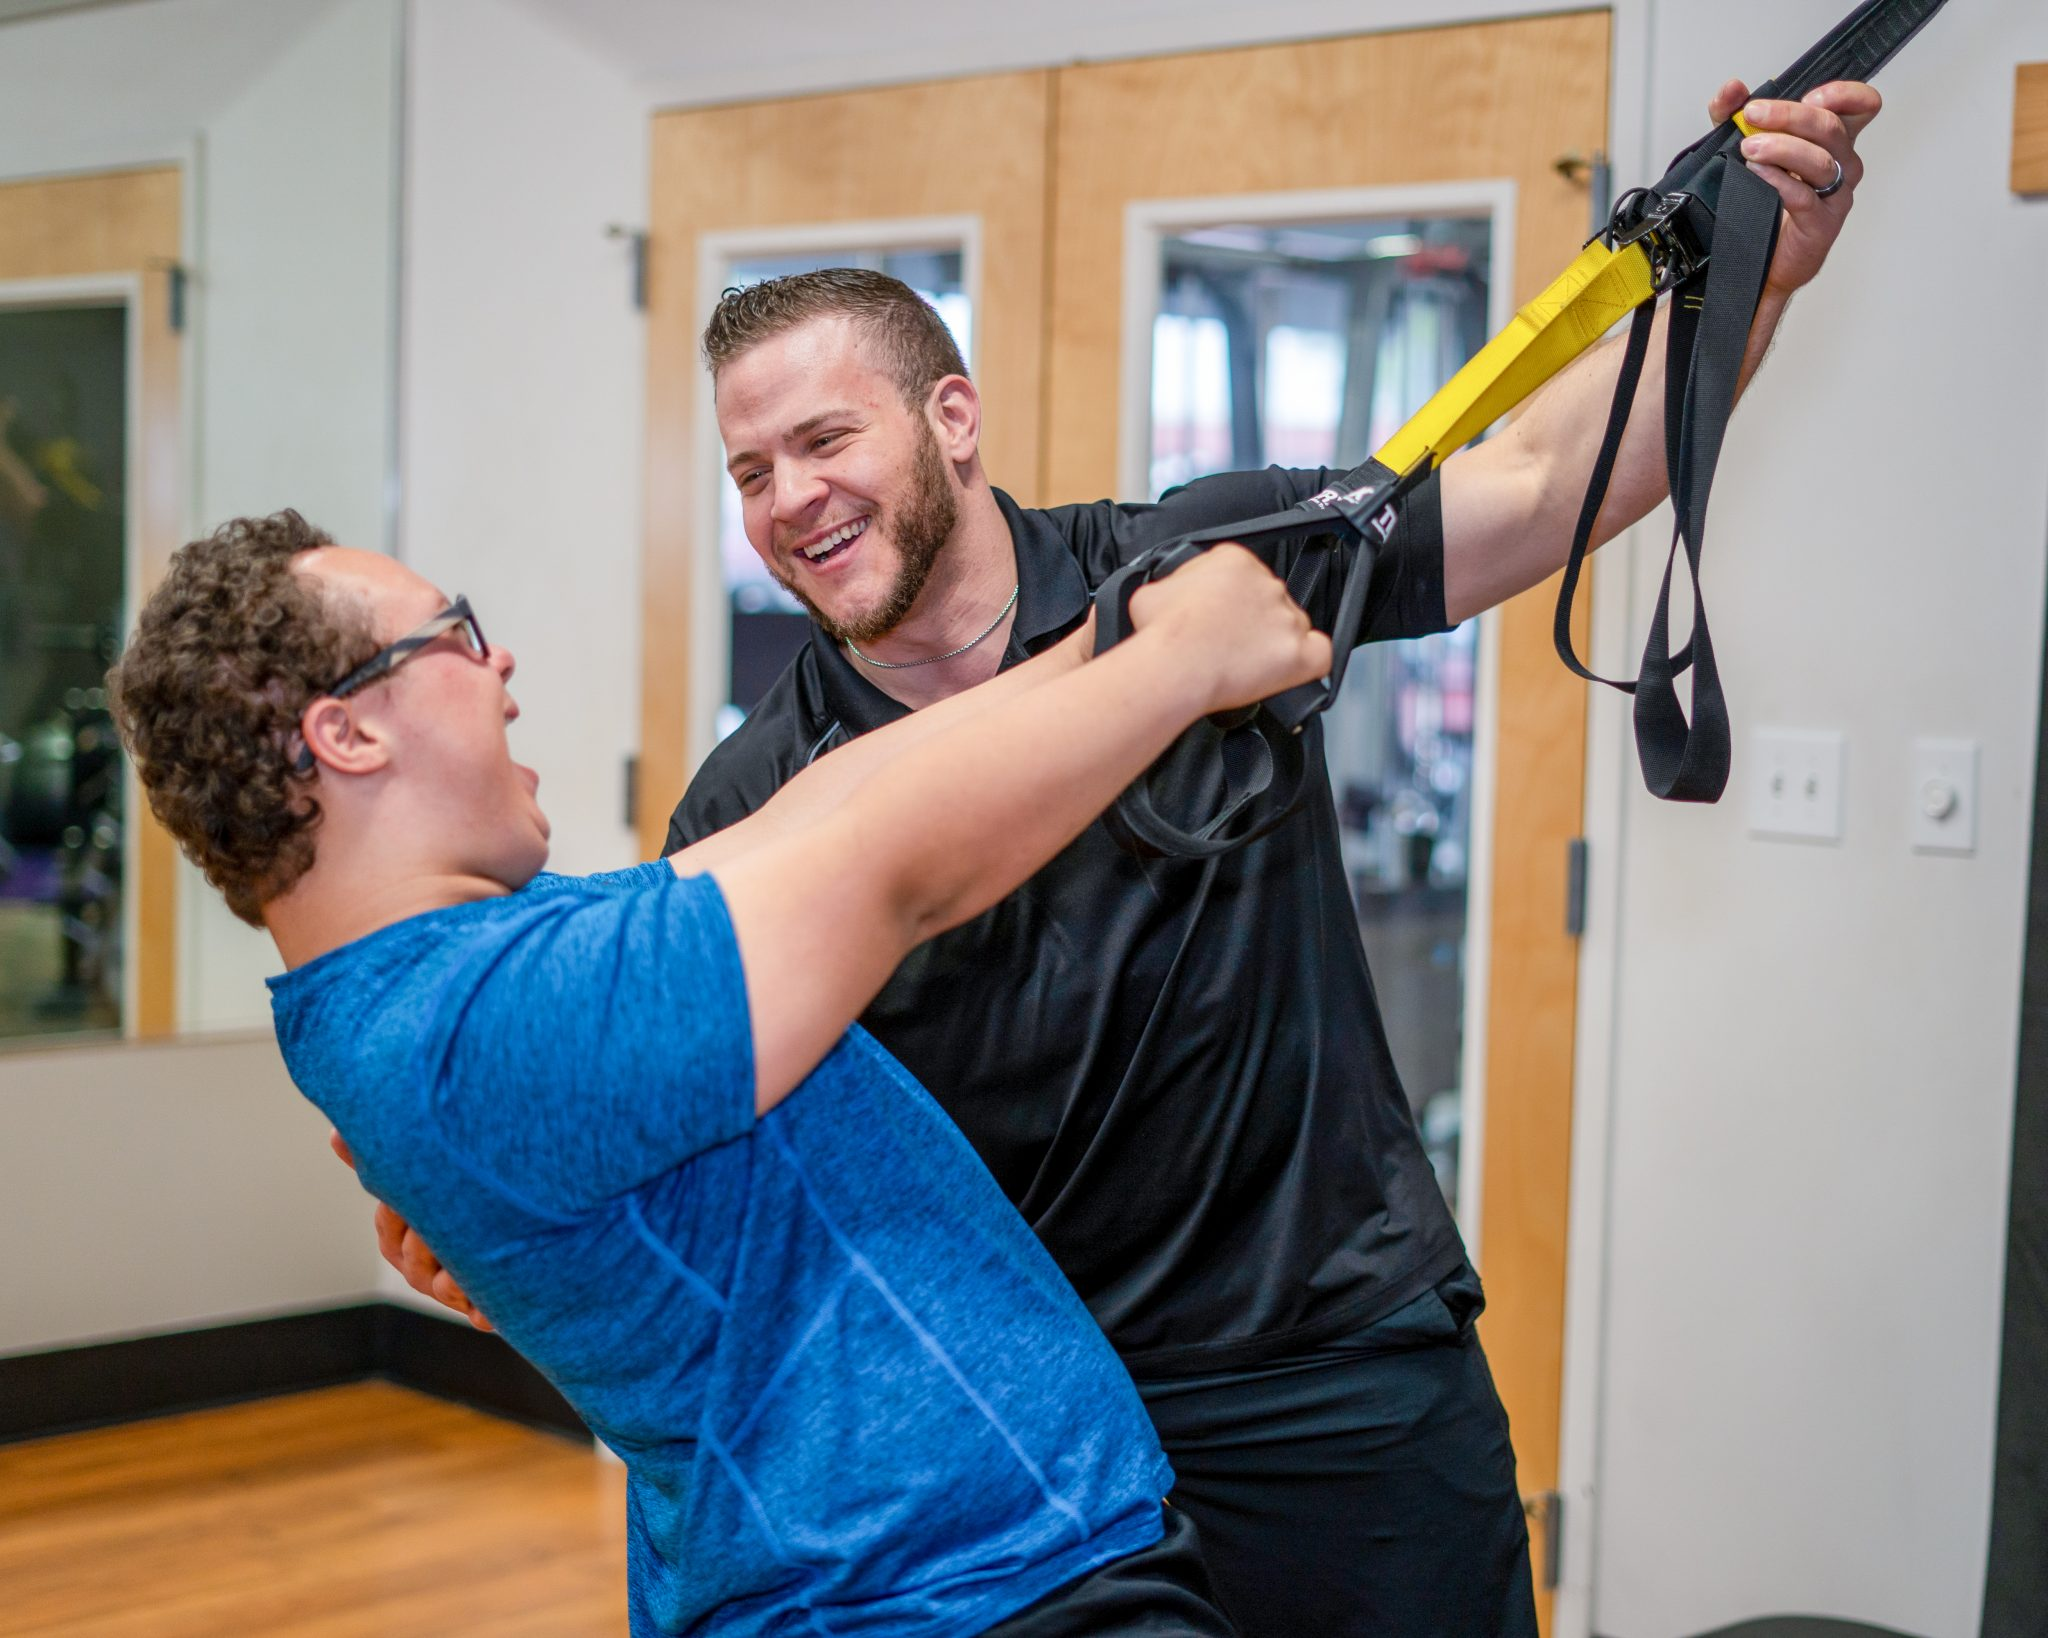 special strong adaptive fitness training trx